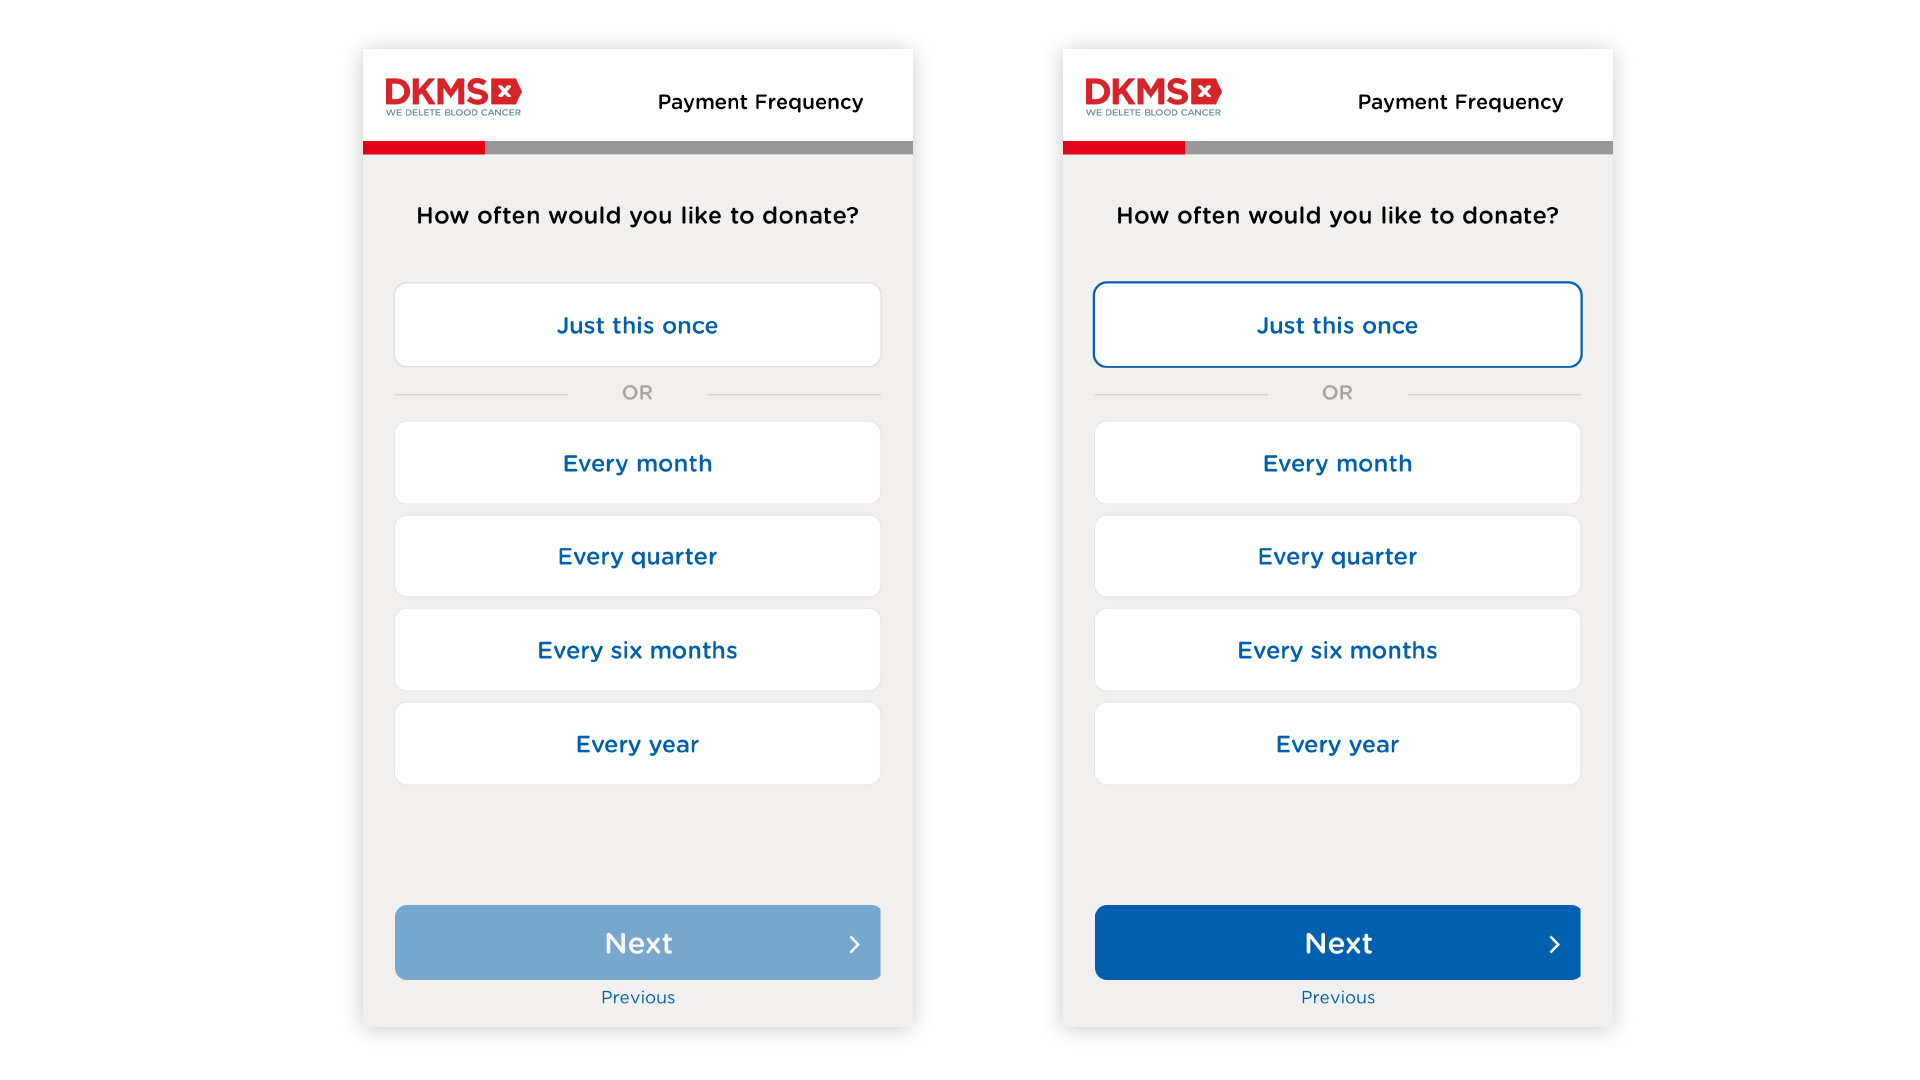 Optimizing the donation flow for mobile